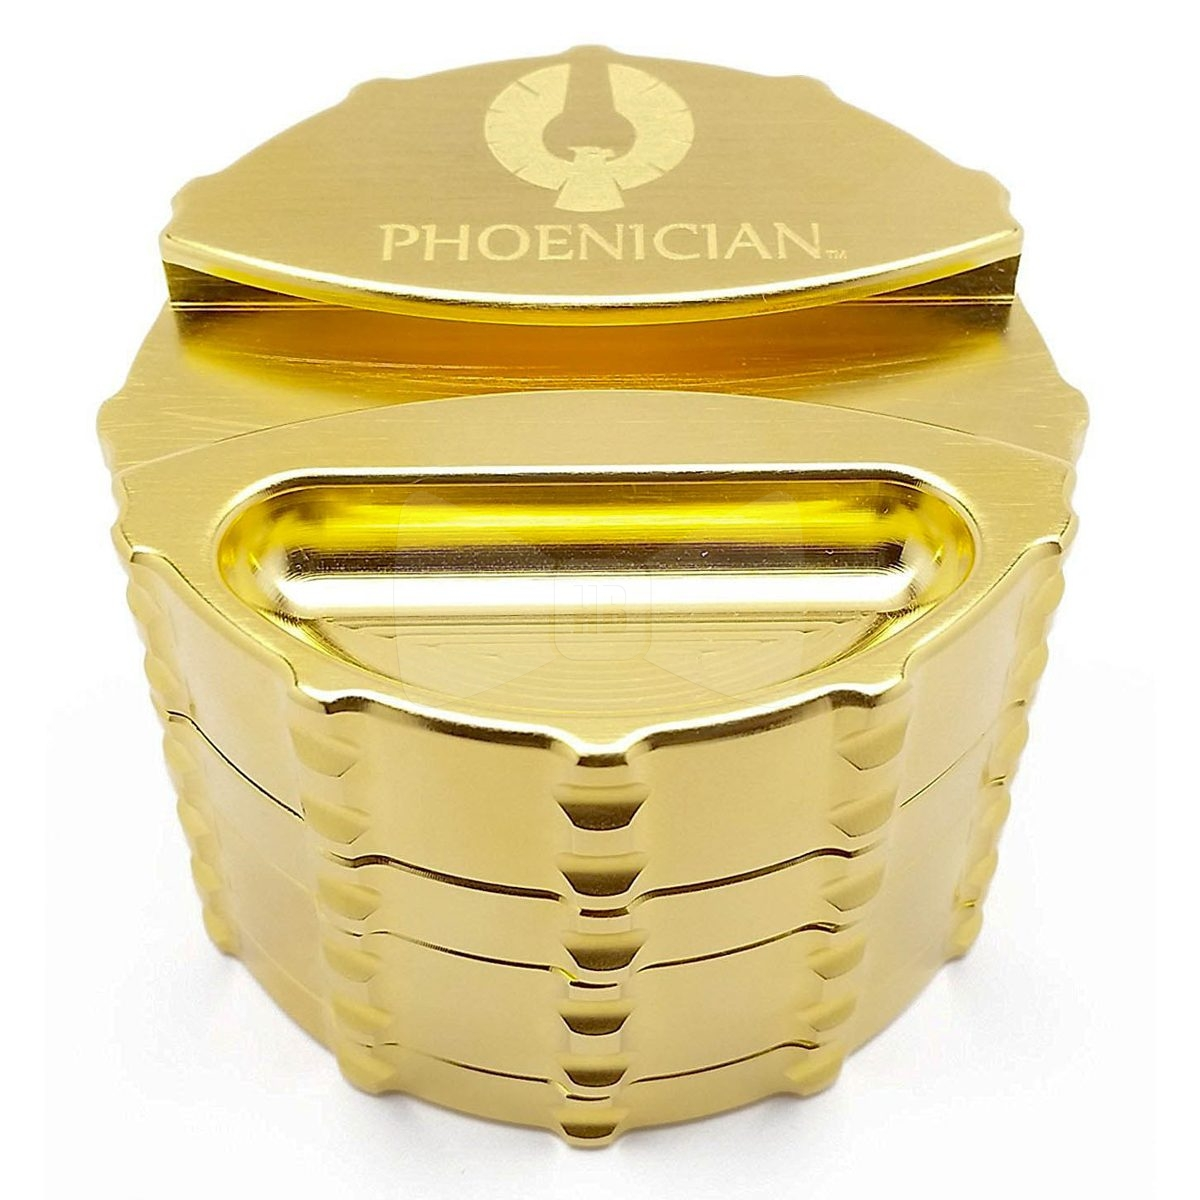 Phoenician Elite 24k Gold Large 4 Piece Grinder With Paper Holder